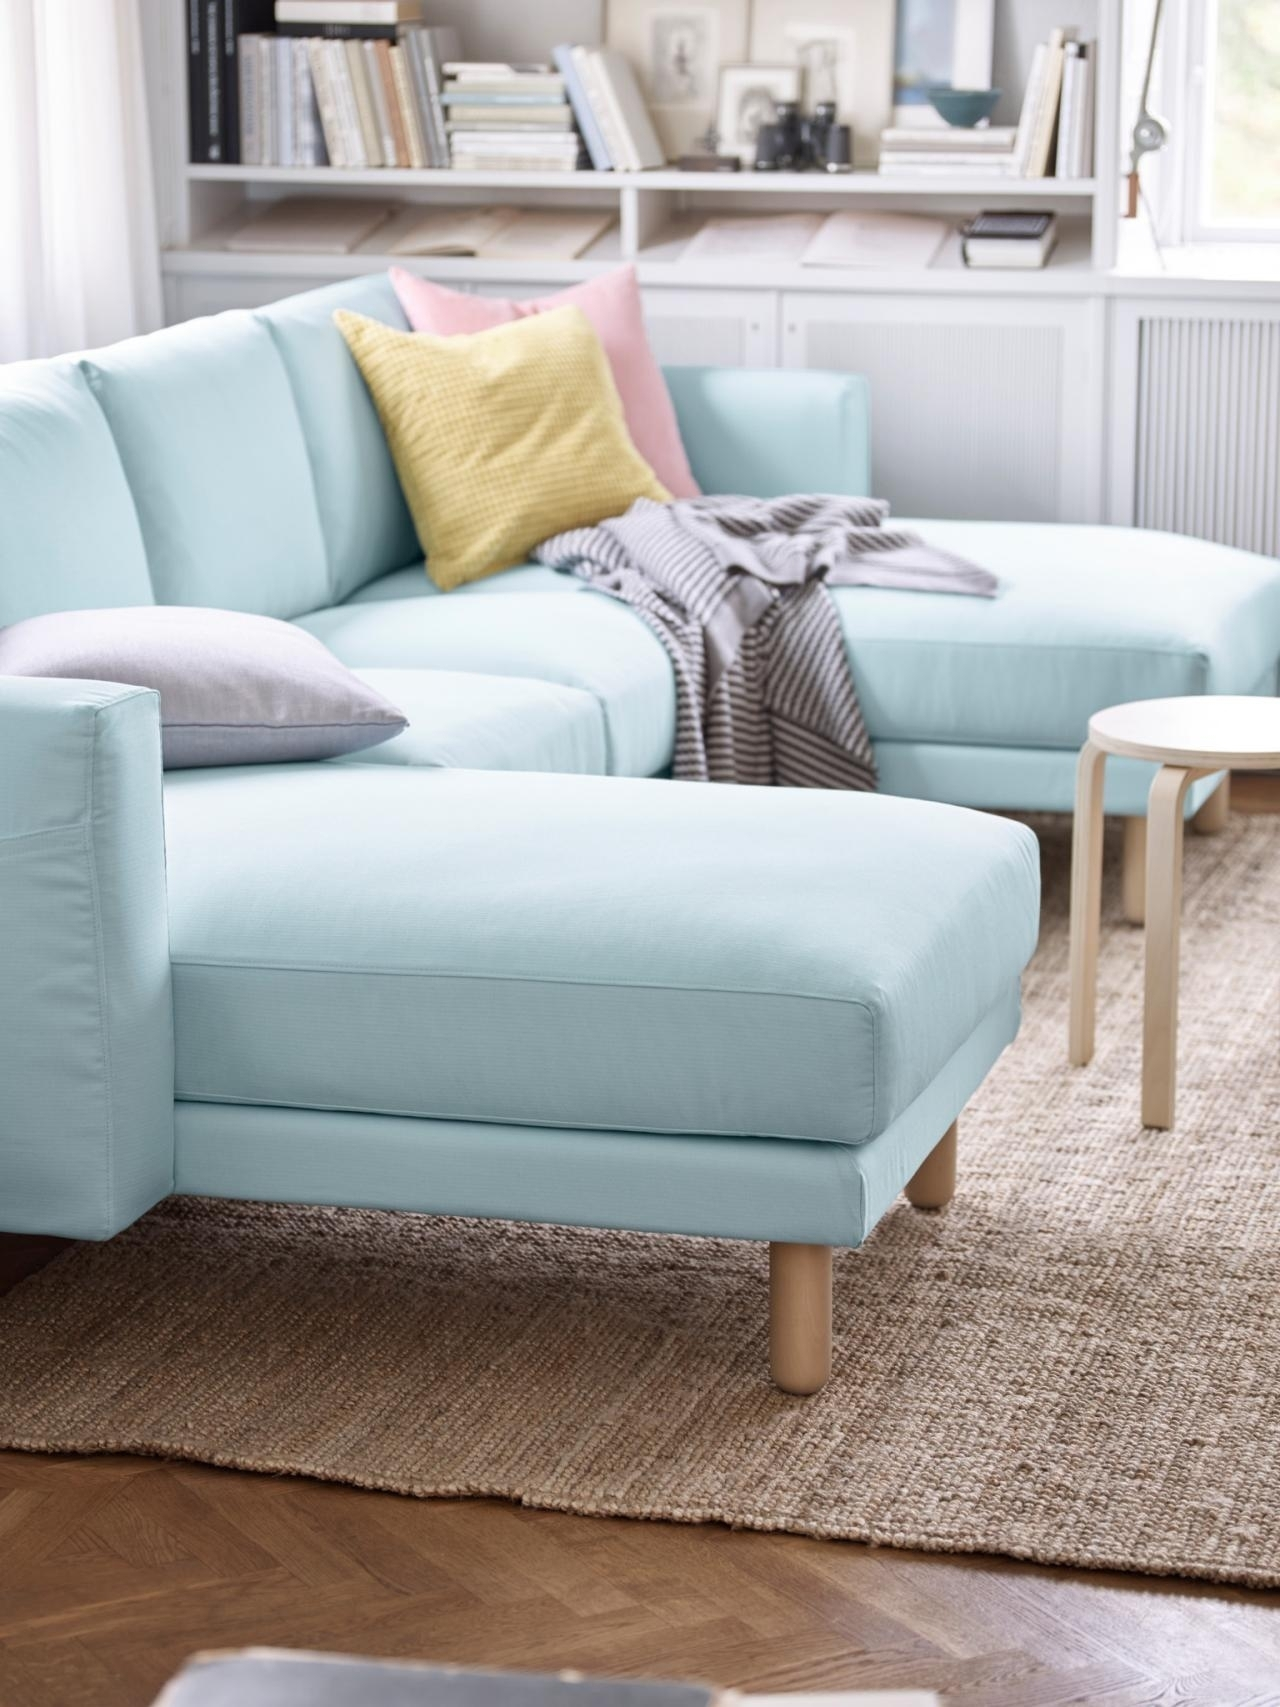 Sectional Sofa Condo Size • Sectional Sofa Intended For Sectional Sofas For Condos (Image 9 of 10)